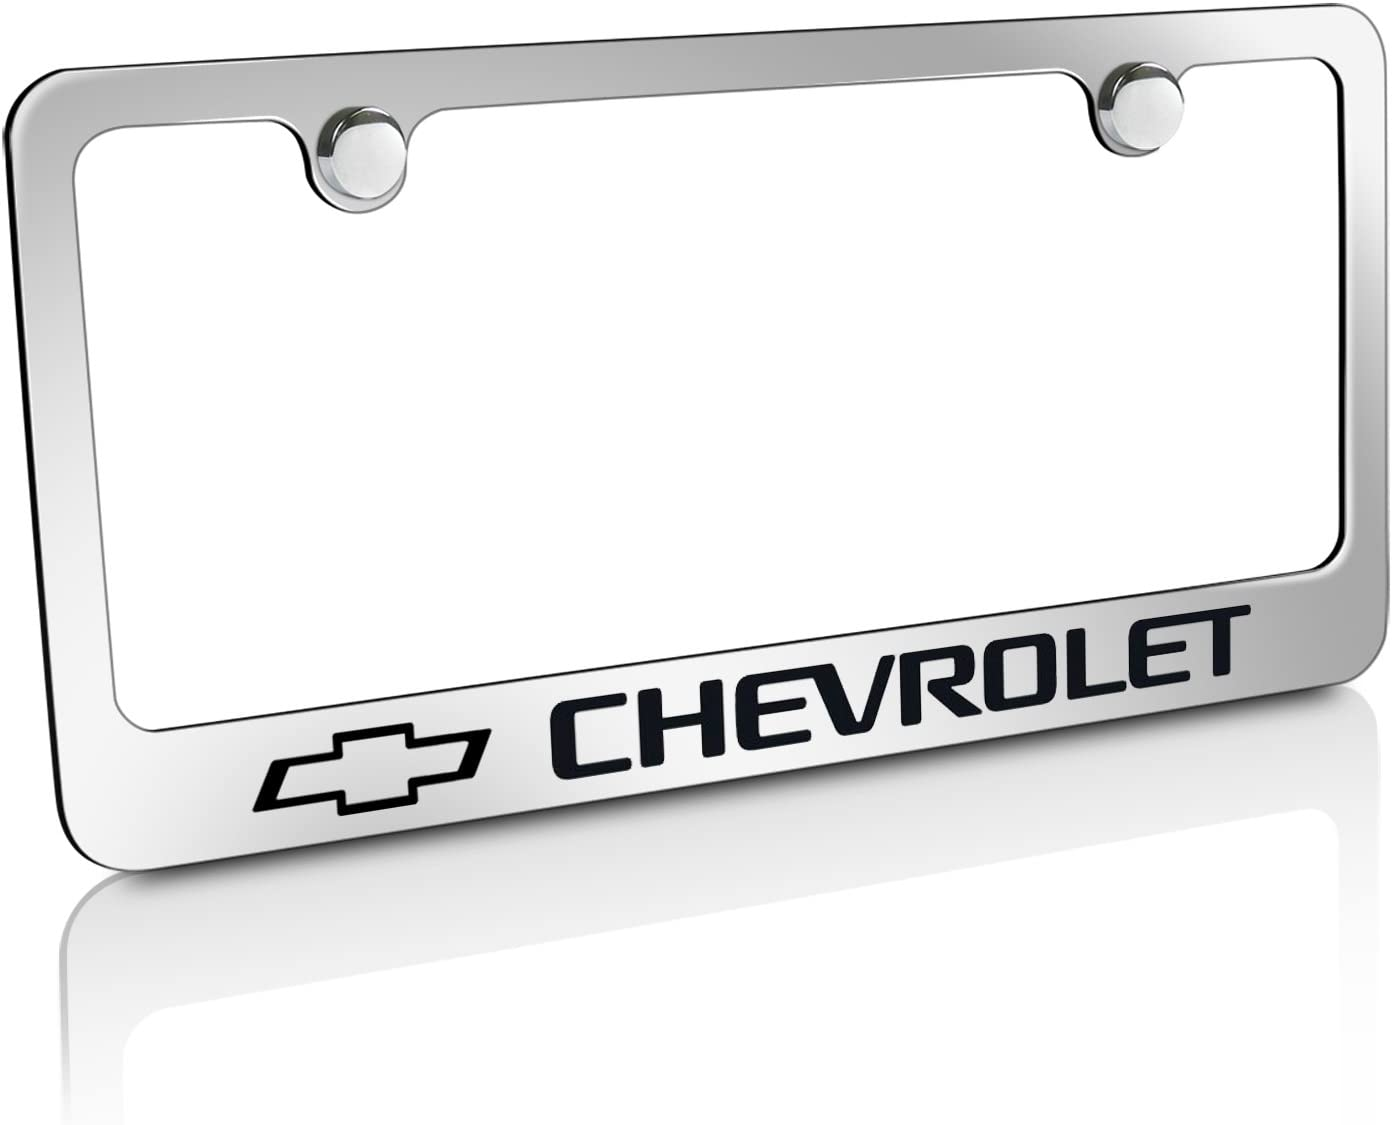 Chevrolet Impala SS Genuine Carbon Stainless Steel 3D Logo Finish License Plate